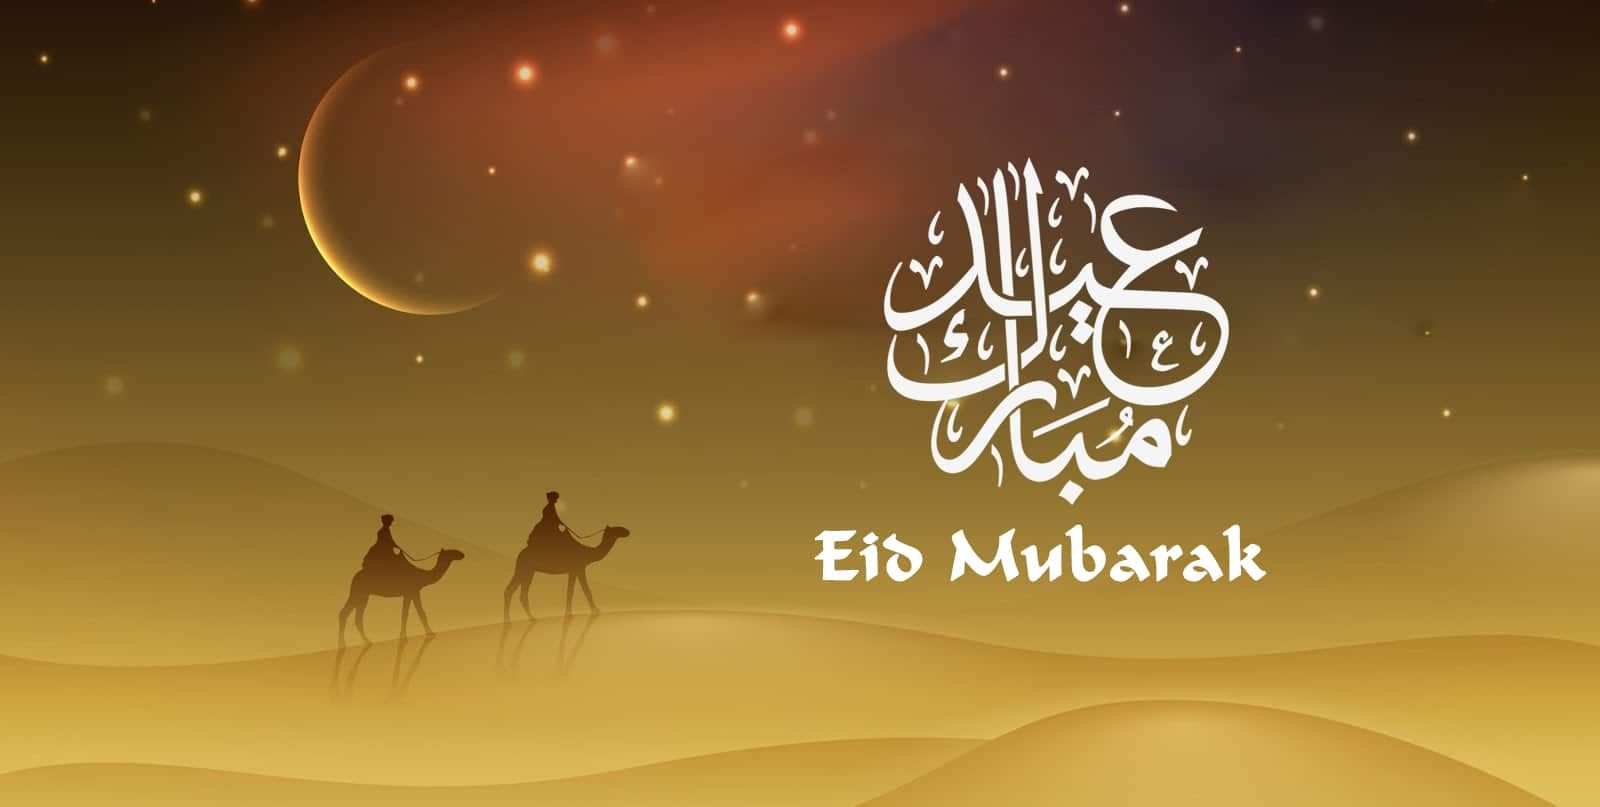 Eid Al Adha Quotes Mubarak Wallpaper Eid Ul Adha Quotes Eid Eid